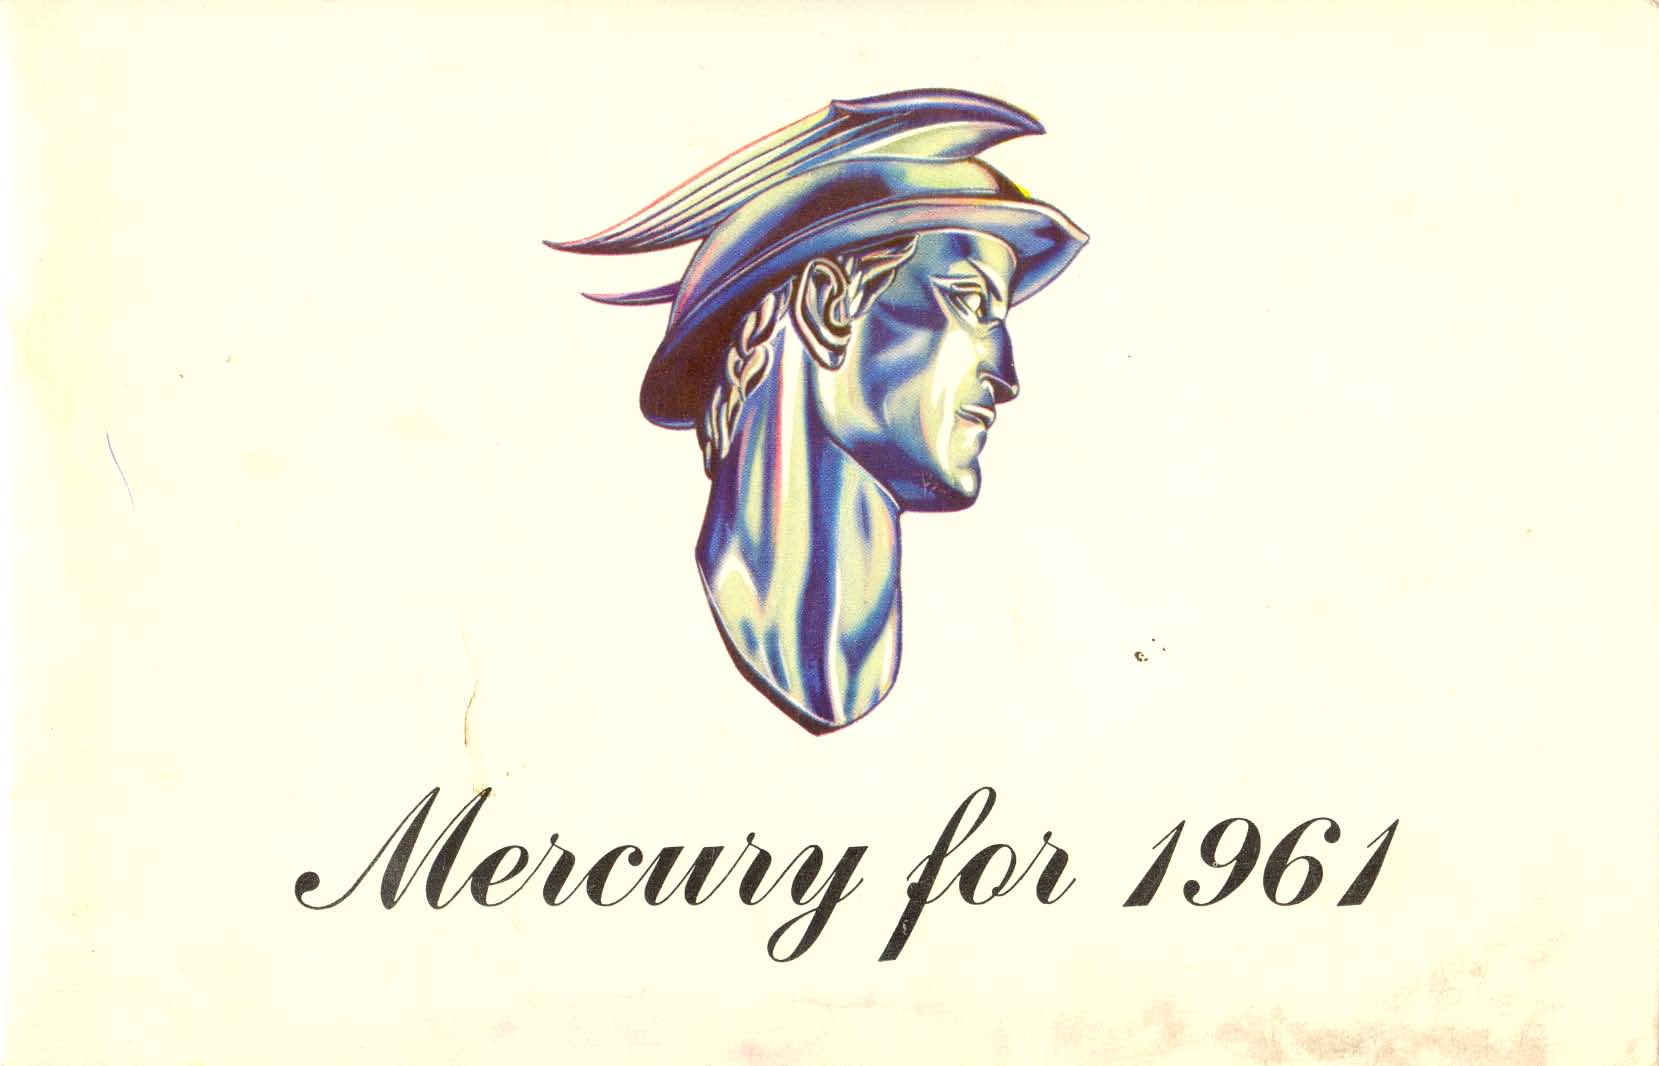 1961 Mercury Owners Manual | Mercury Automobile History